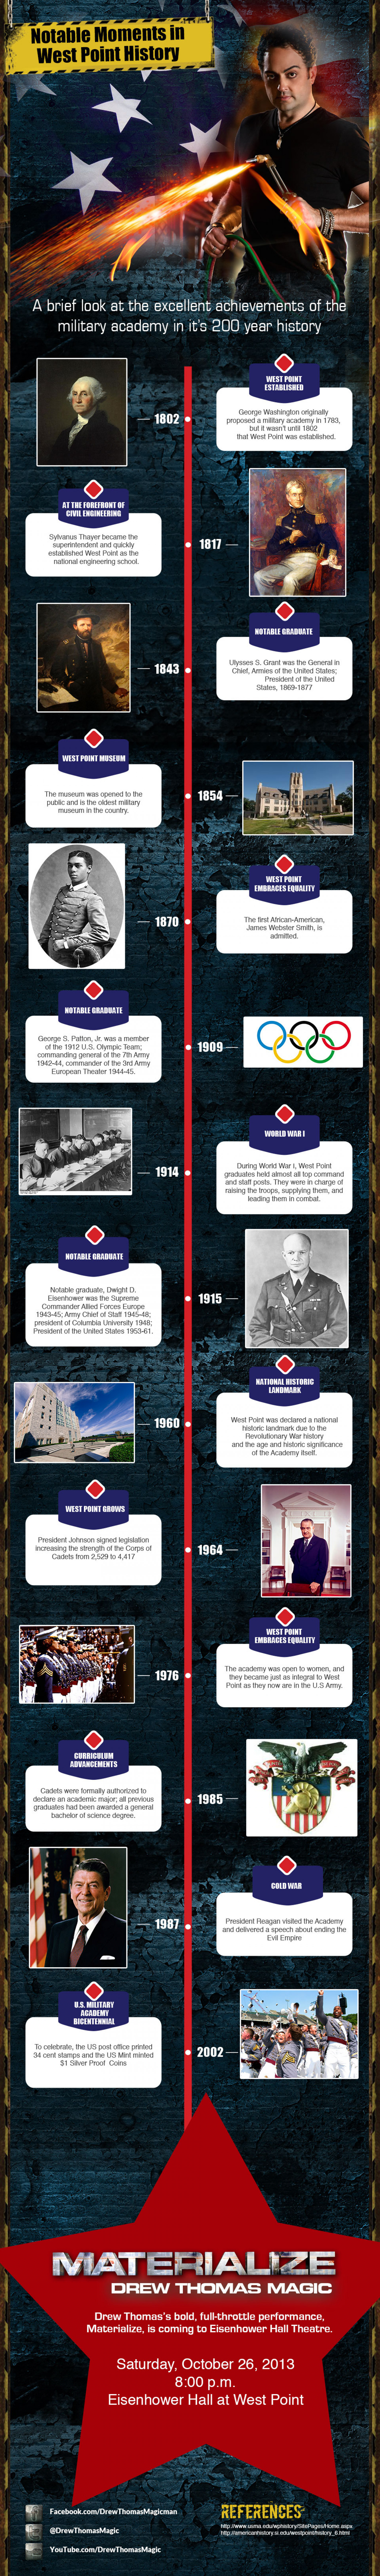 Notable Moments in West Point History Infographic